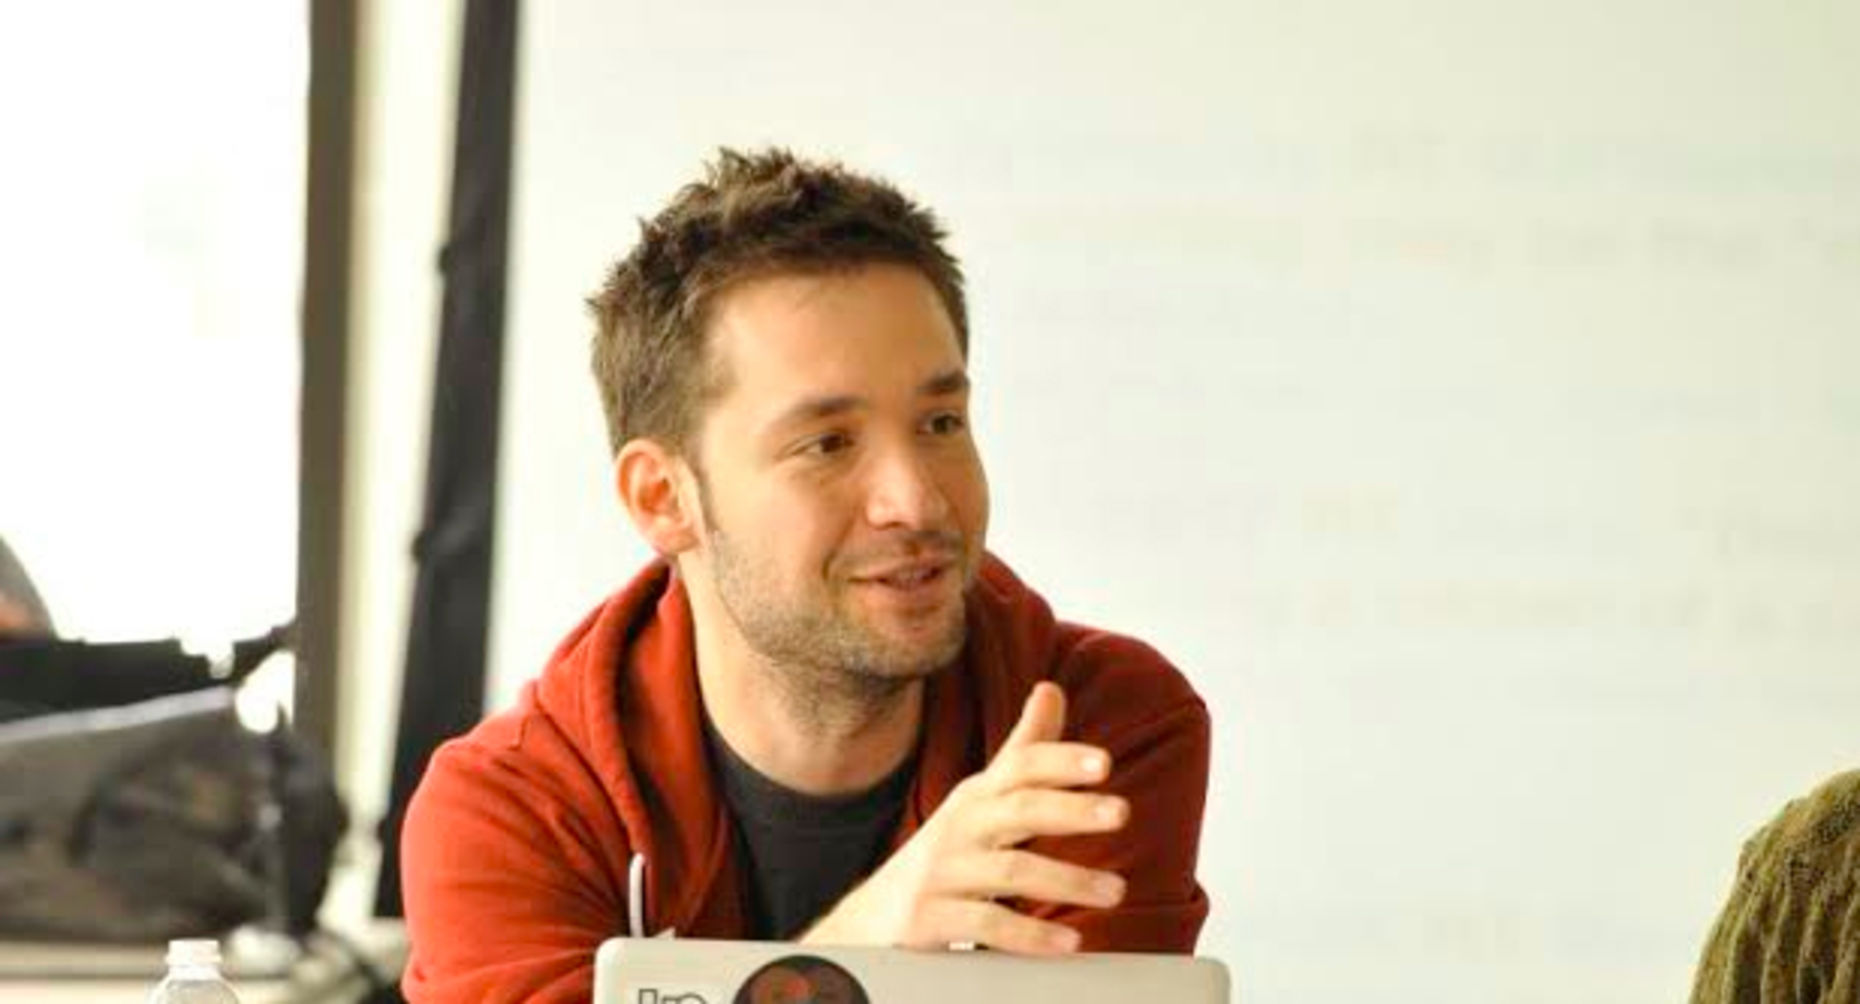 Reddit co-founder Alexis Ohanian. Credit: USV/ Flickr.